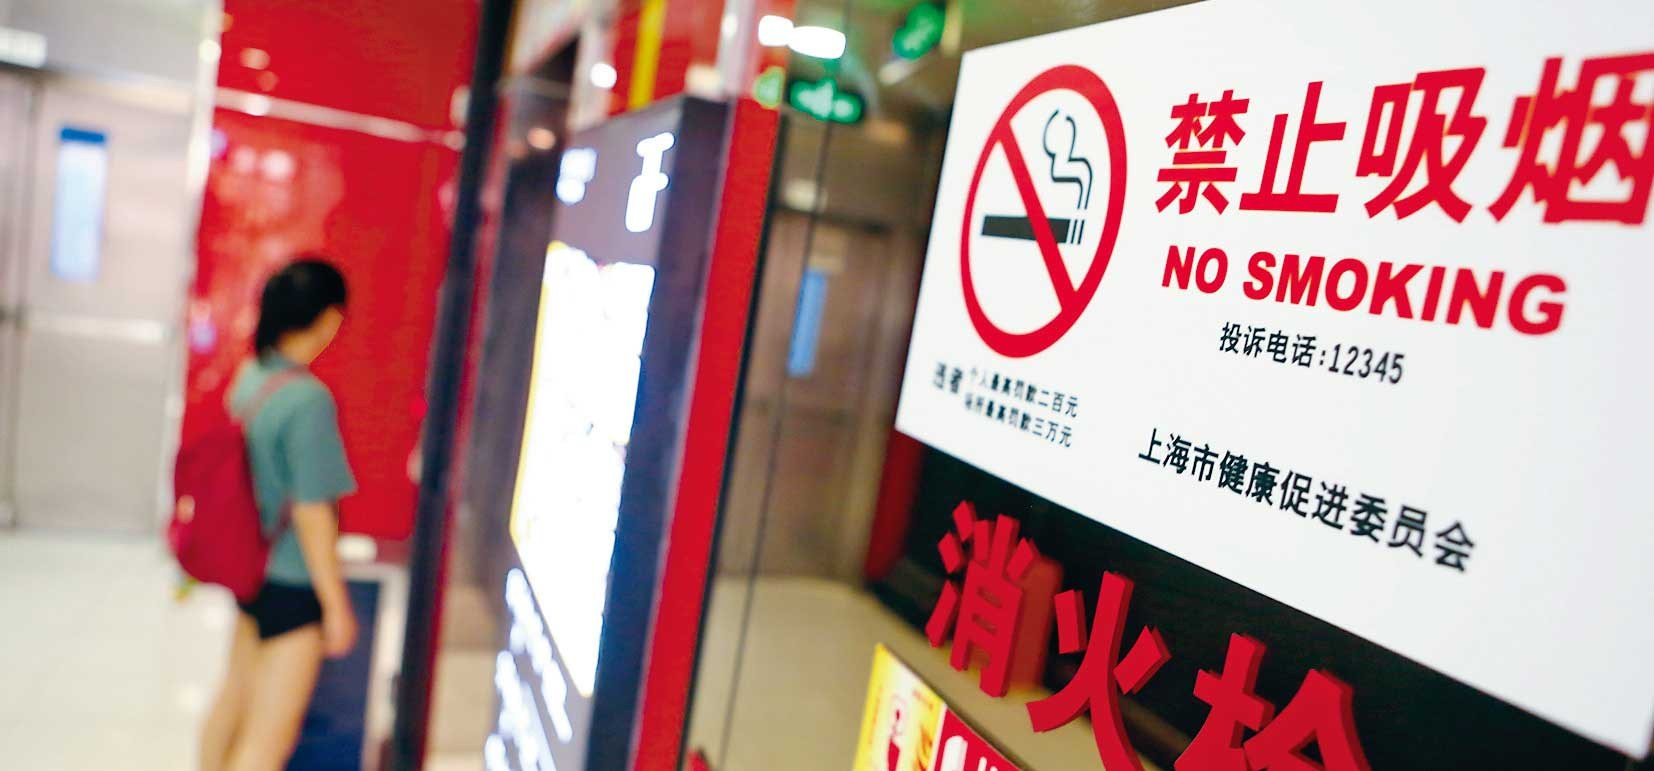 Indoor smoking ban makes an impact though not in stairwells